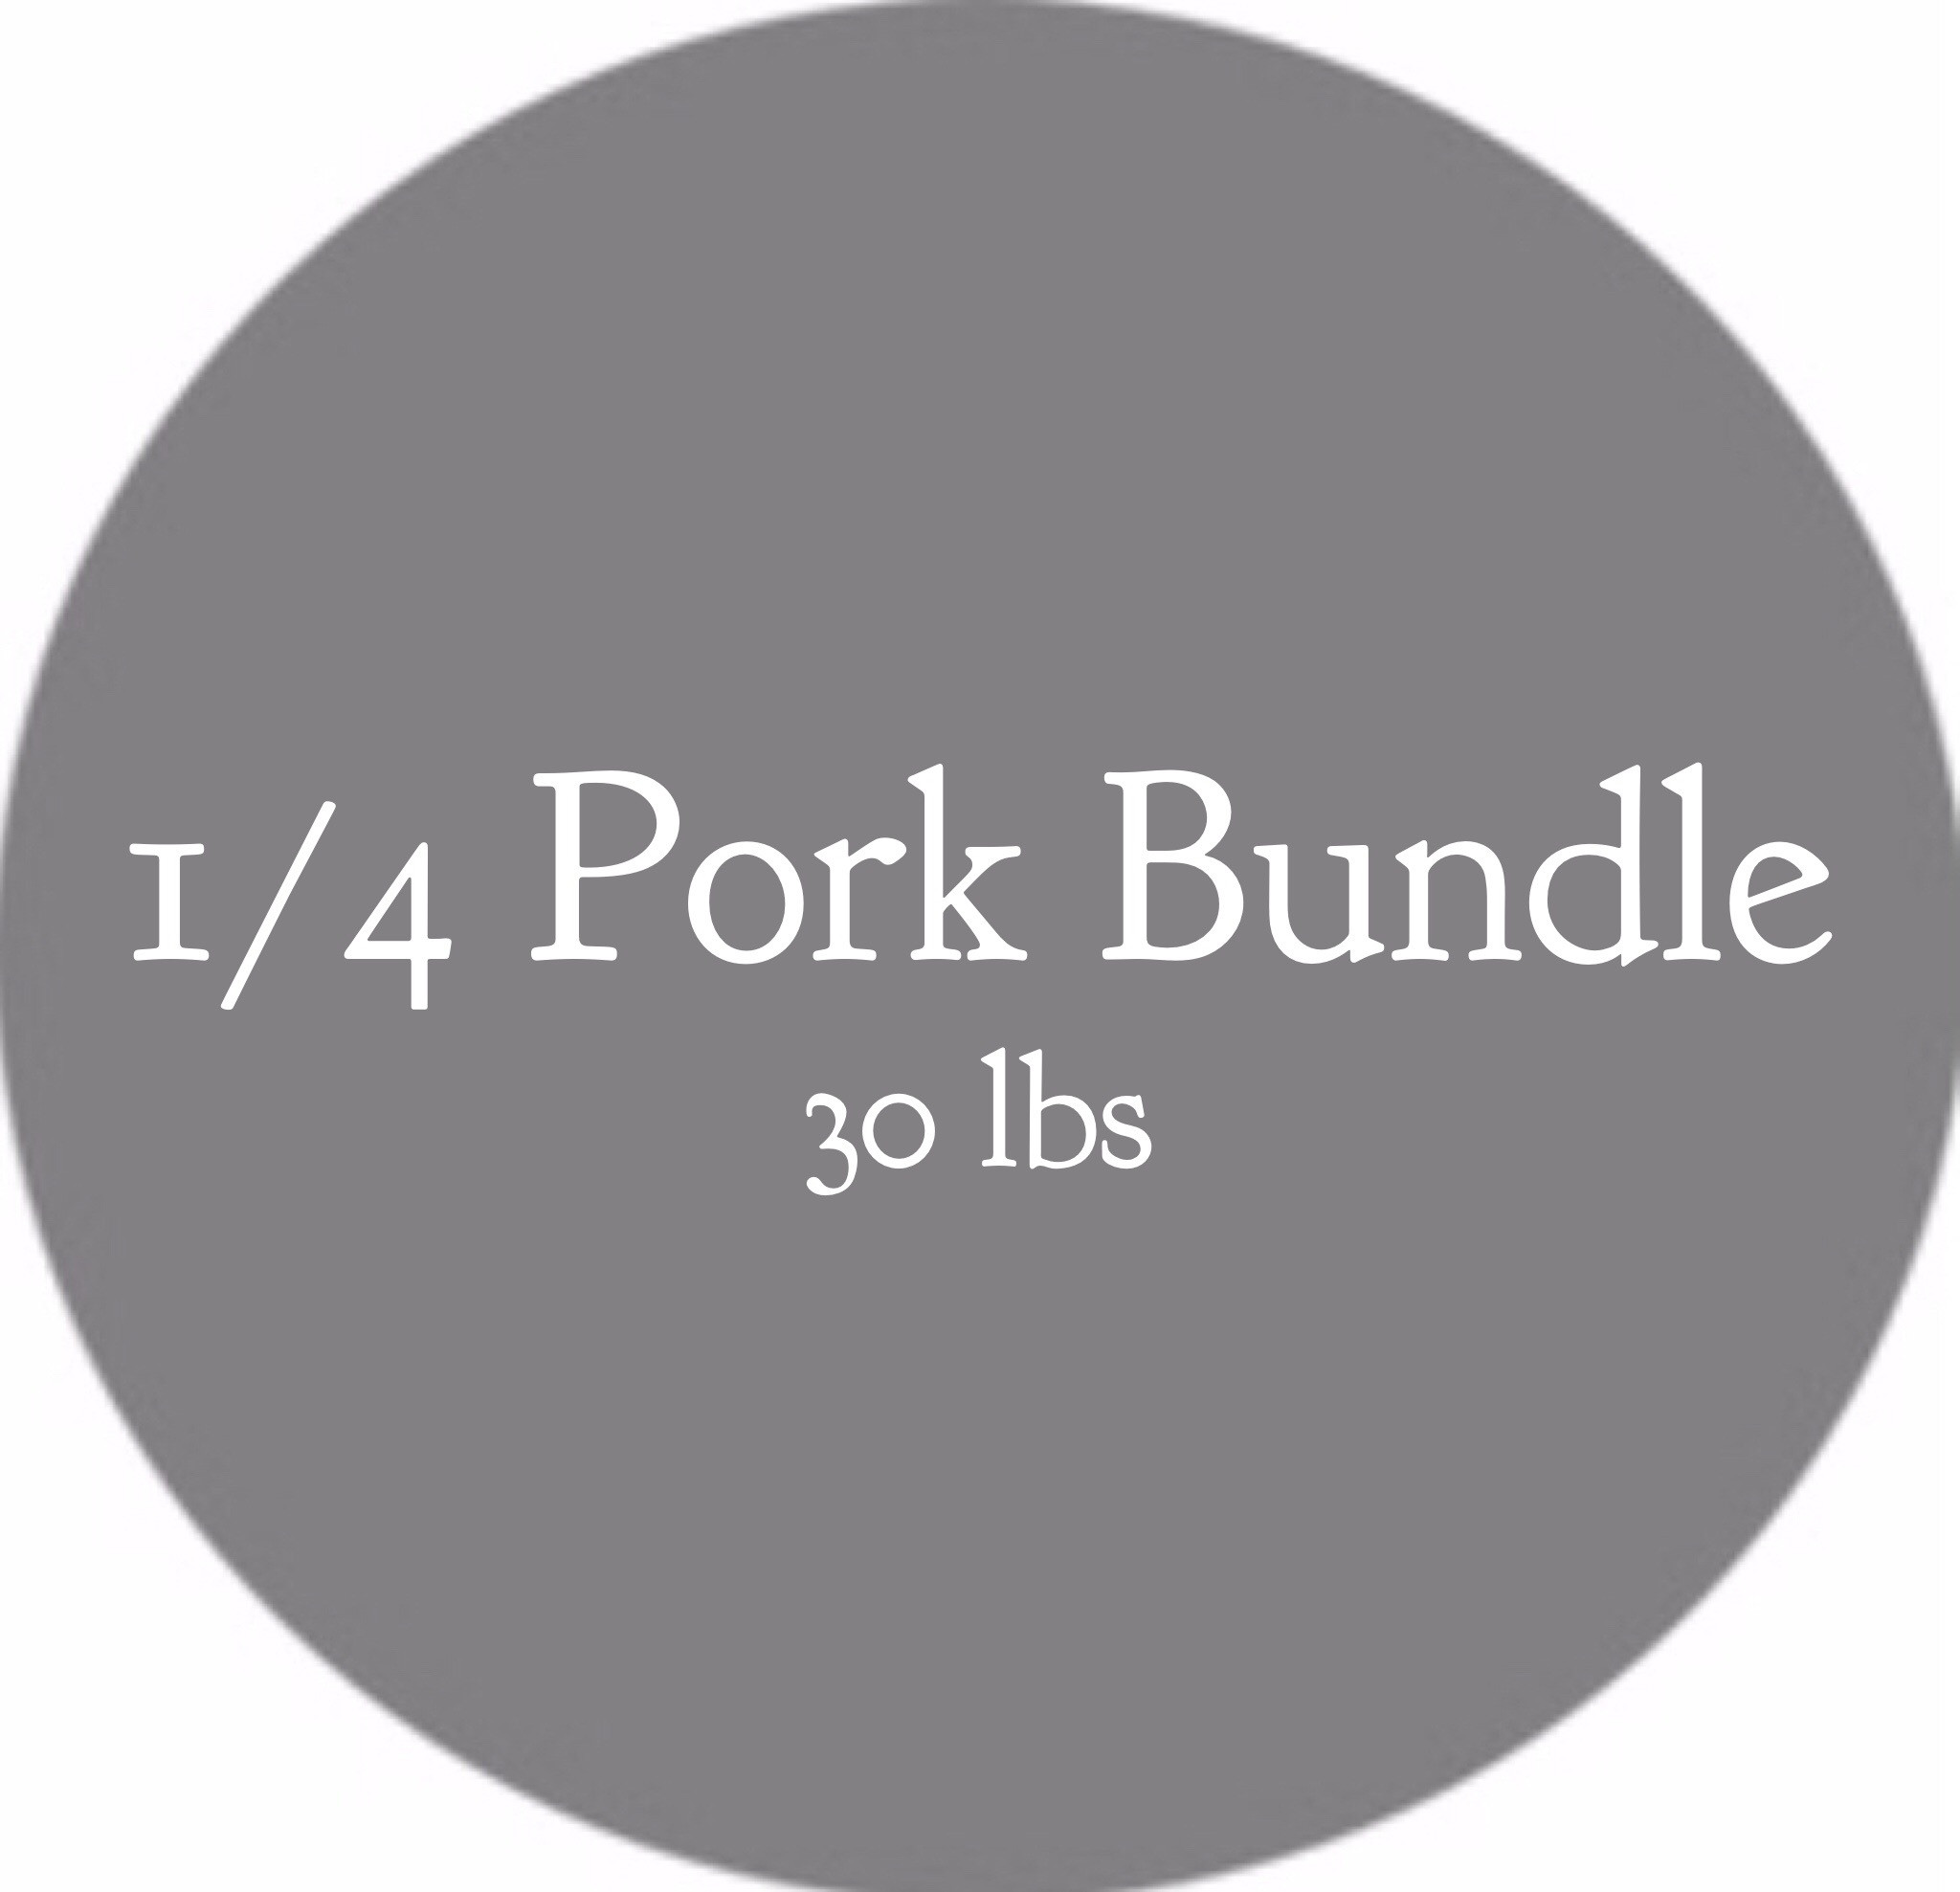 1/4 Pork Bundle- 30 lbs